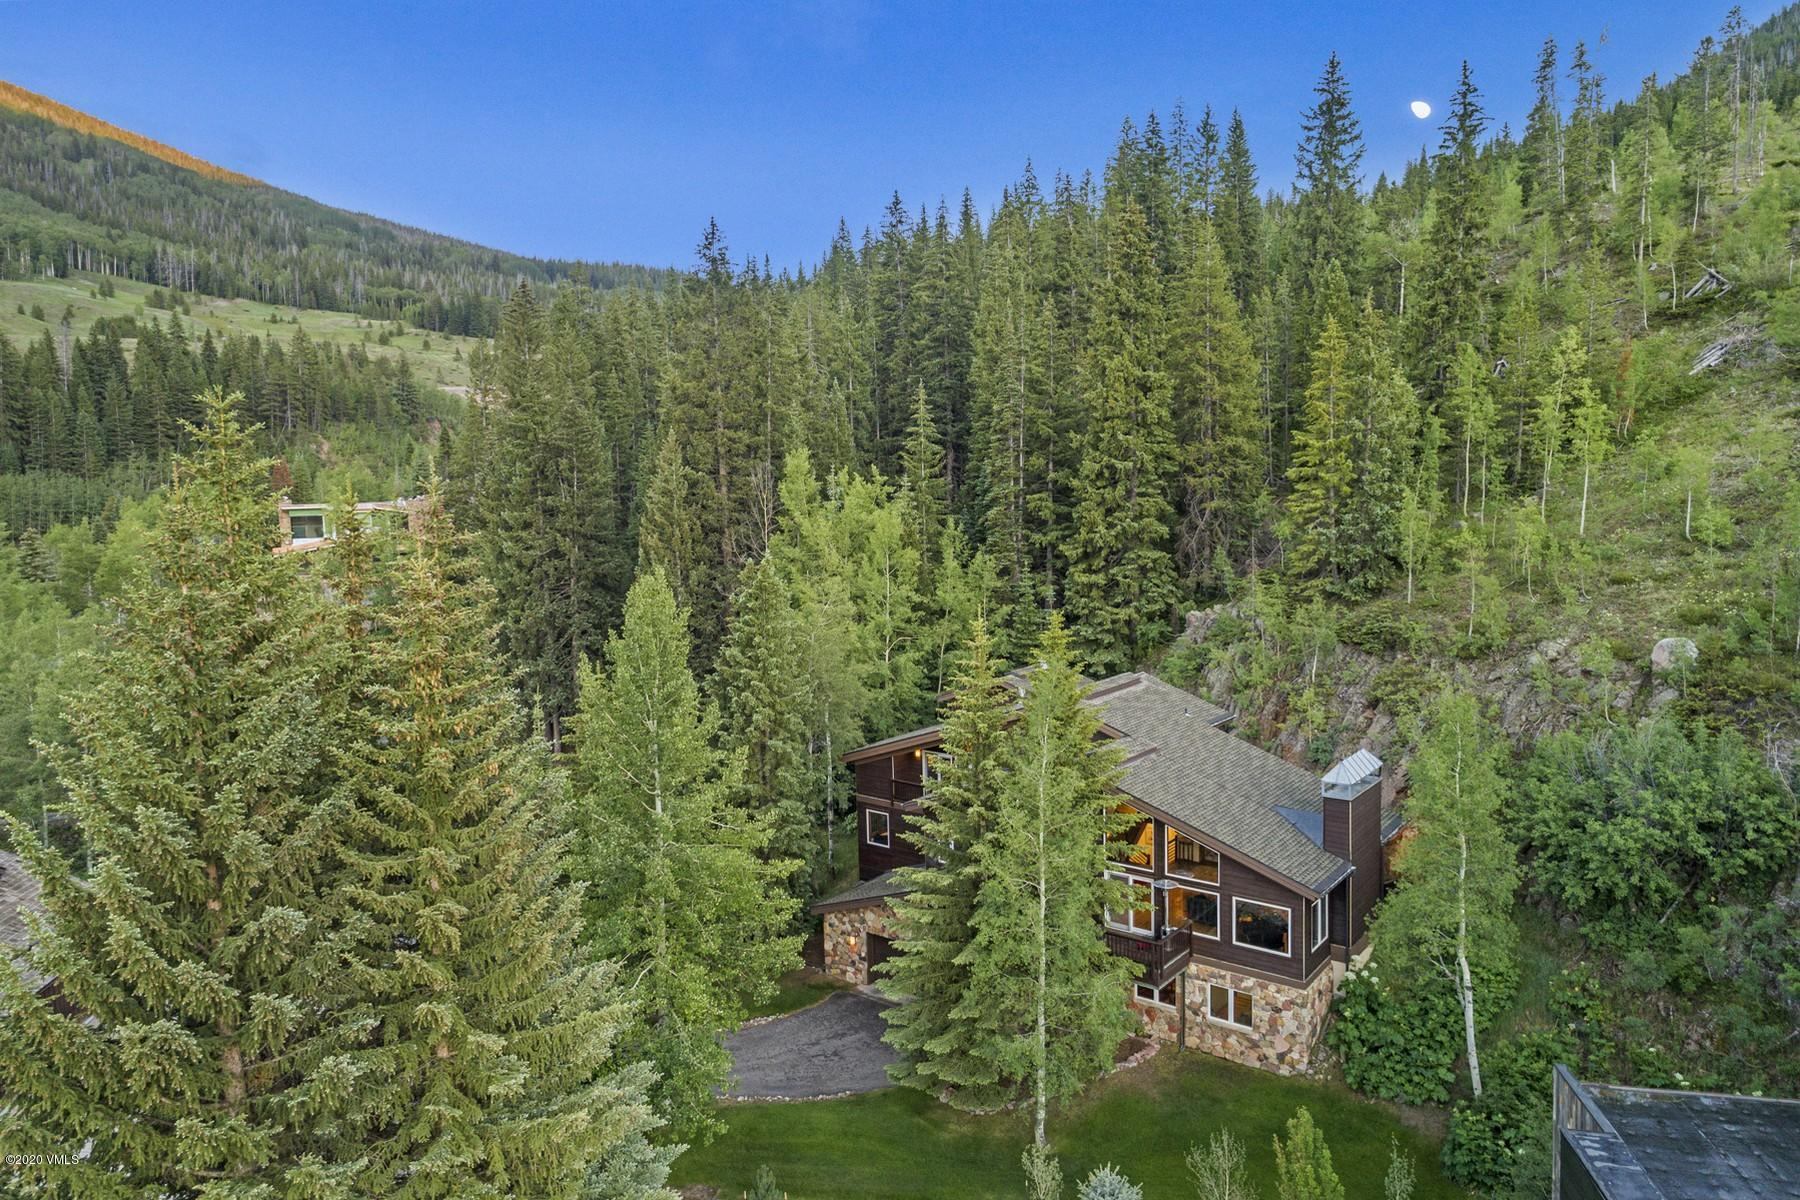 A spacious Alpine retreat tucked onto the mountainside in East Vail.  Uniquely situated for ultimate privacy and convenient access to Vail & Lionshead villages as well as world-class skiing, hiking and biking. Meticulously maintained with oversized windows, staircases and hallways and an open concept on the main floor with cathedral-like ceilings. Premium kitchen cabinetry and stainless-steel appliances plus a fourth-floor master suite and coveted oversized 2-car garage with additional storage.